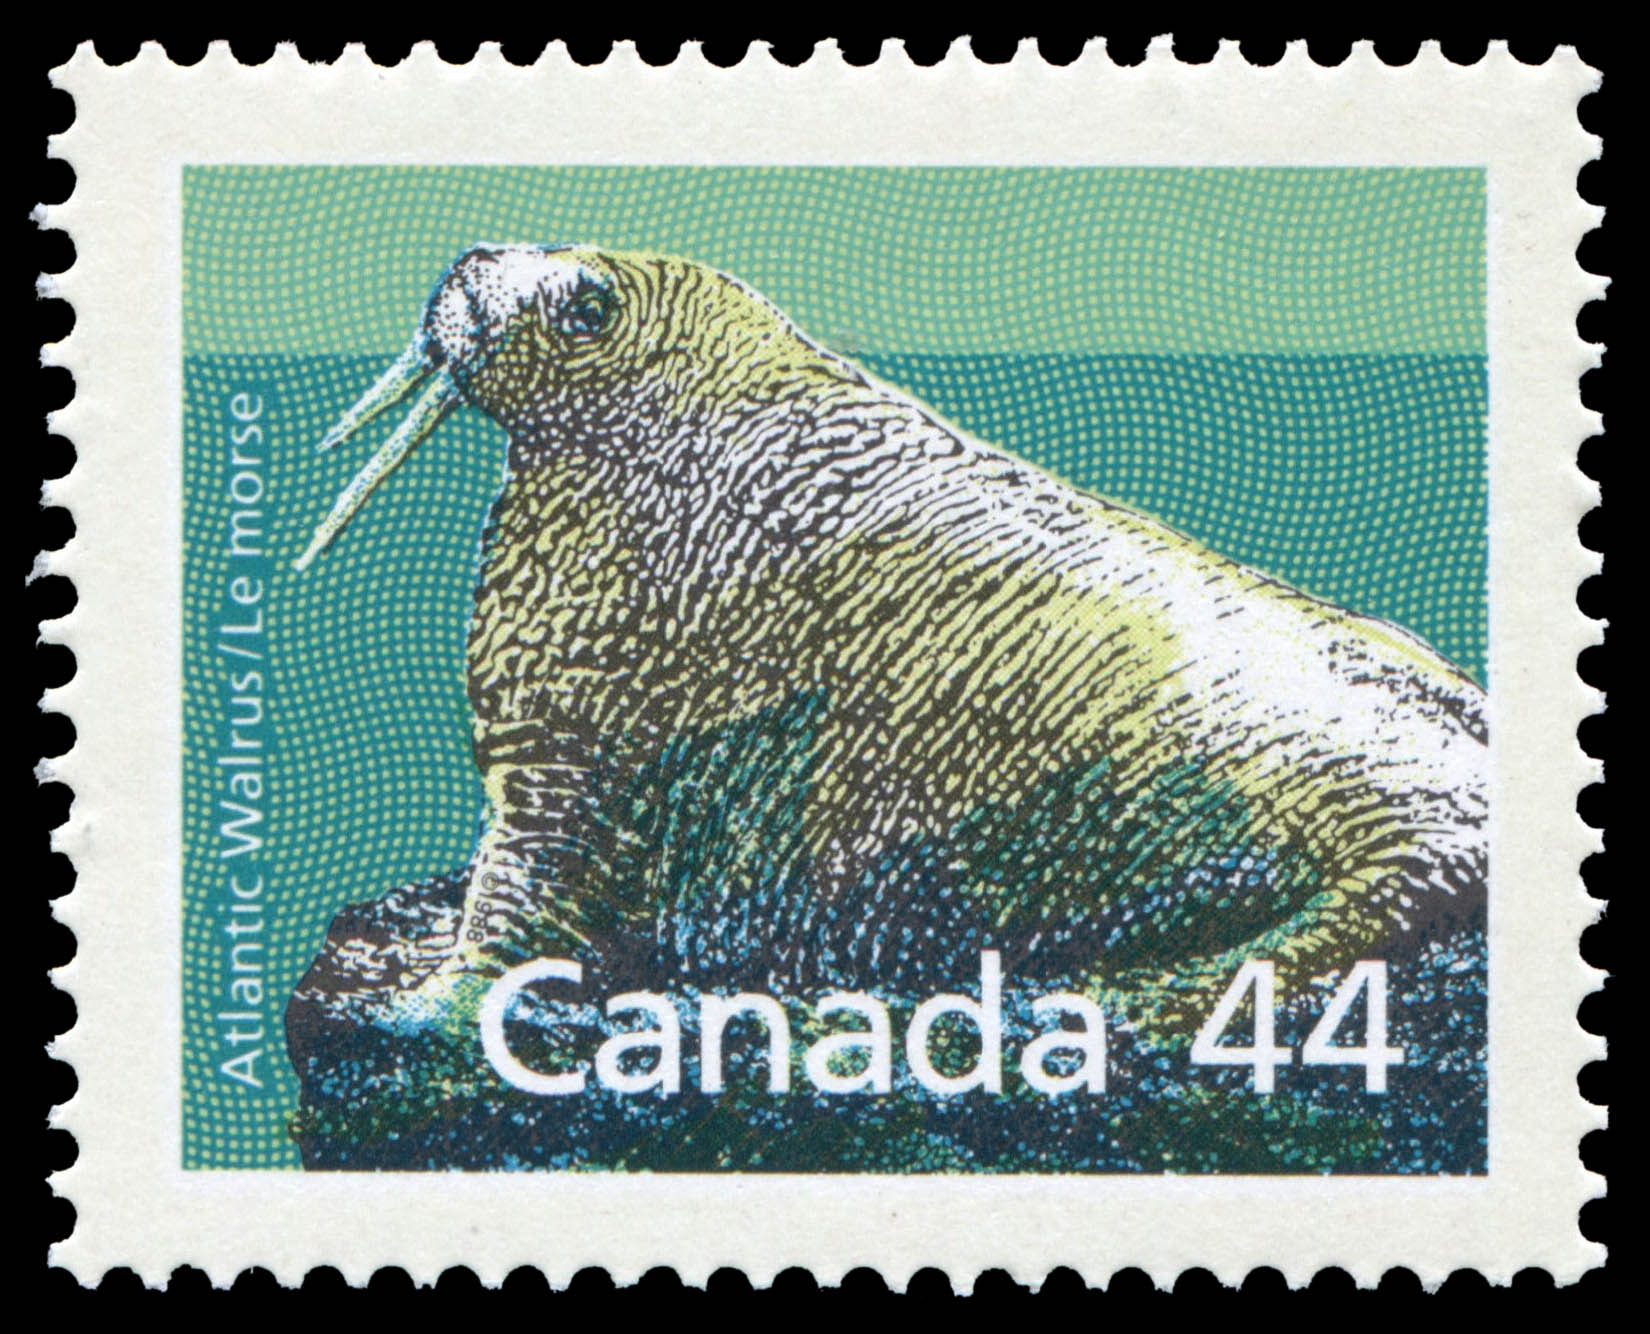 Atlantic Walrus Canada Postage Stamp | Canadian Mammals